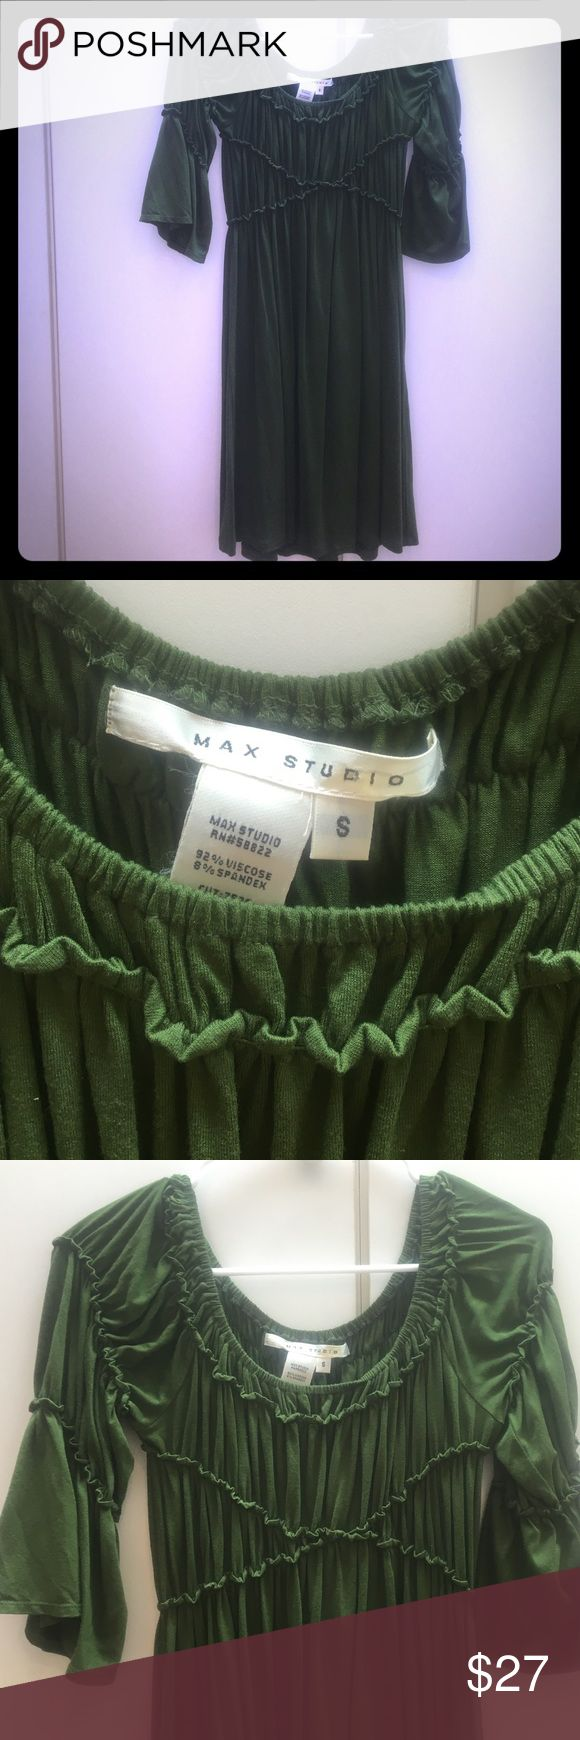 Gorgeous green Max Studio dress!!!💚 Beautiful clover, green empire waist Max Studio dress!  Knee length, puckered and ruffled around torso for a flattering fit, and bottom drapes softly...great with boots! 3/4 sleeves, adorable baby doll type dress! Gently used in perfect condition! Max Studio Dresses Midi